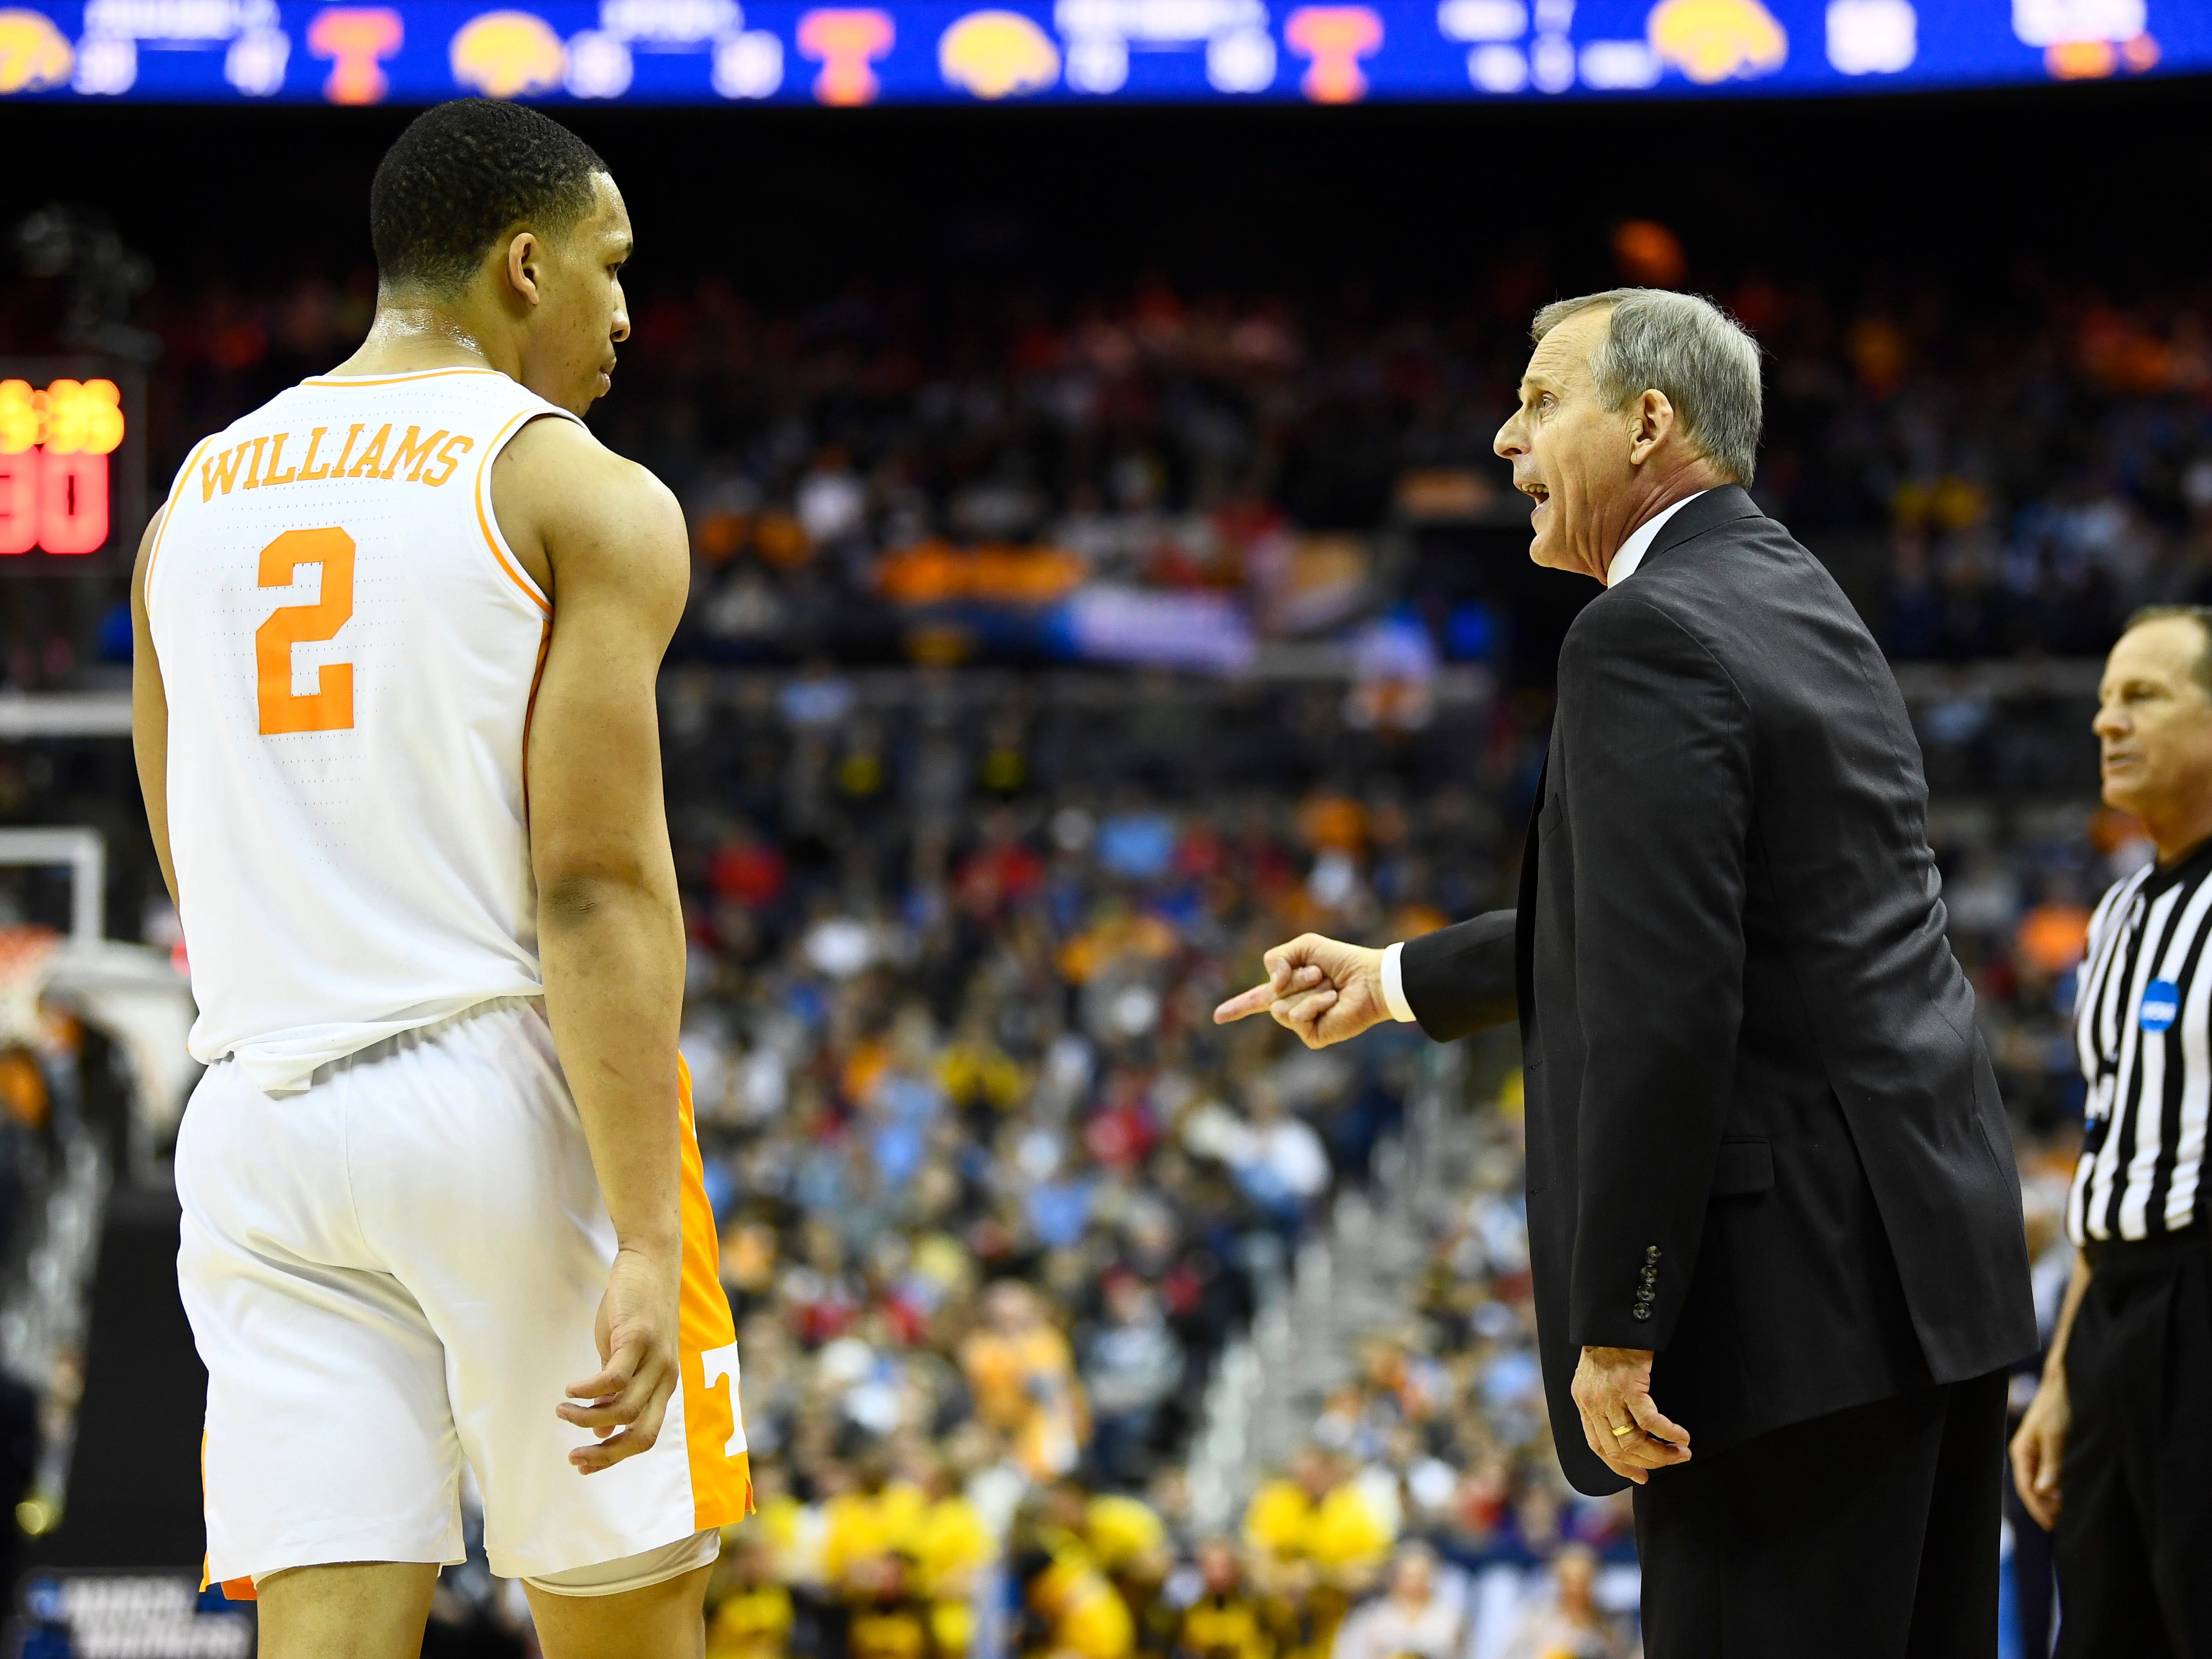 Tennessee head coach Rick Barnes yells out to forward Grant Williams (2) during the second half of the game against the Iowa Hawkeyes in the second round of the NCAA Tournament at Nationwide Arena in Columbus, Ohio, Sunday, March 24, 2019.